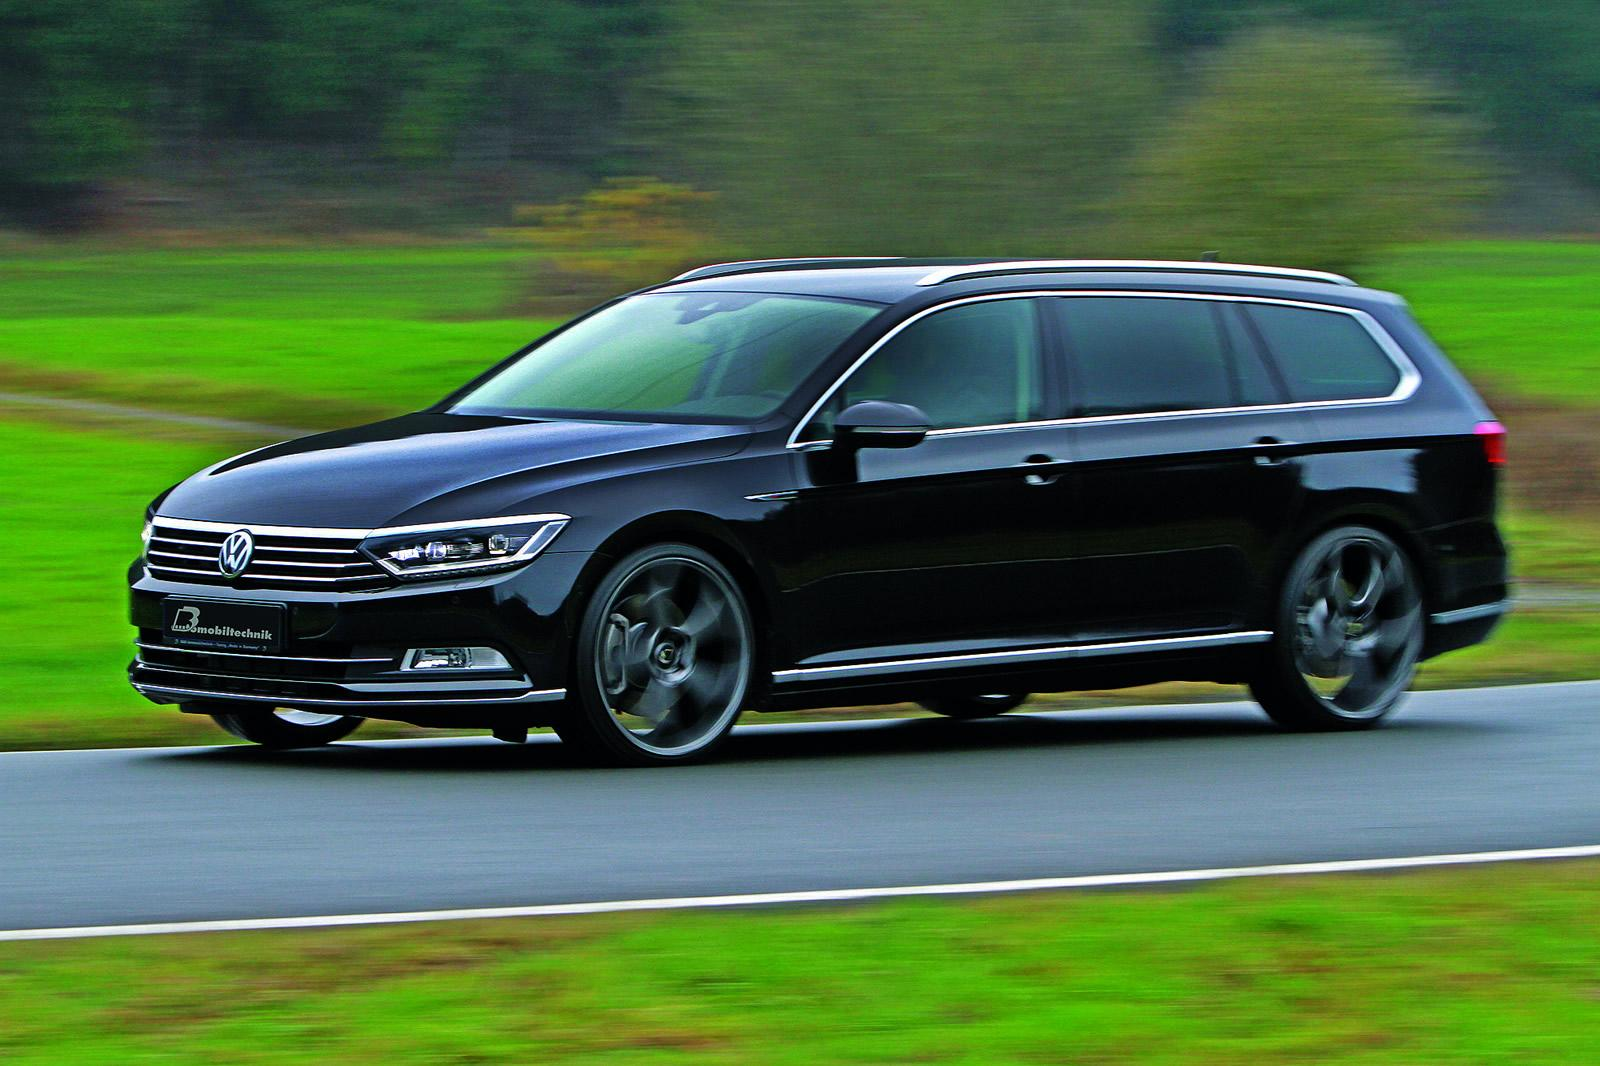 2015 Volkswagen Passat 2.0 BiTDI Tuned to 300 HP: B8 Torque Monster - autoevolution